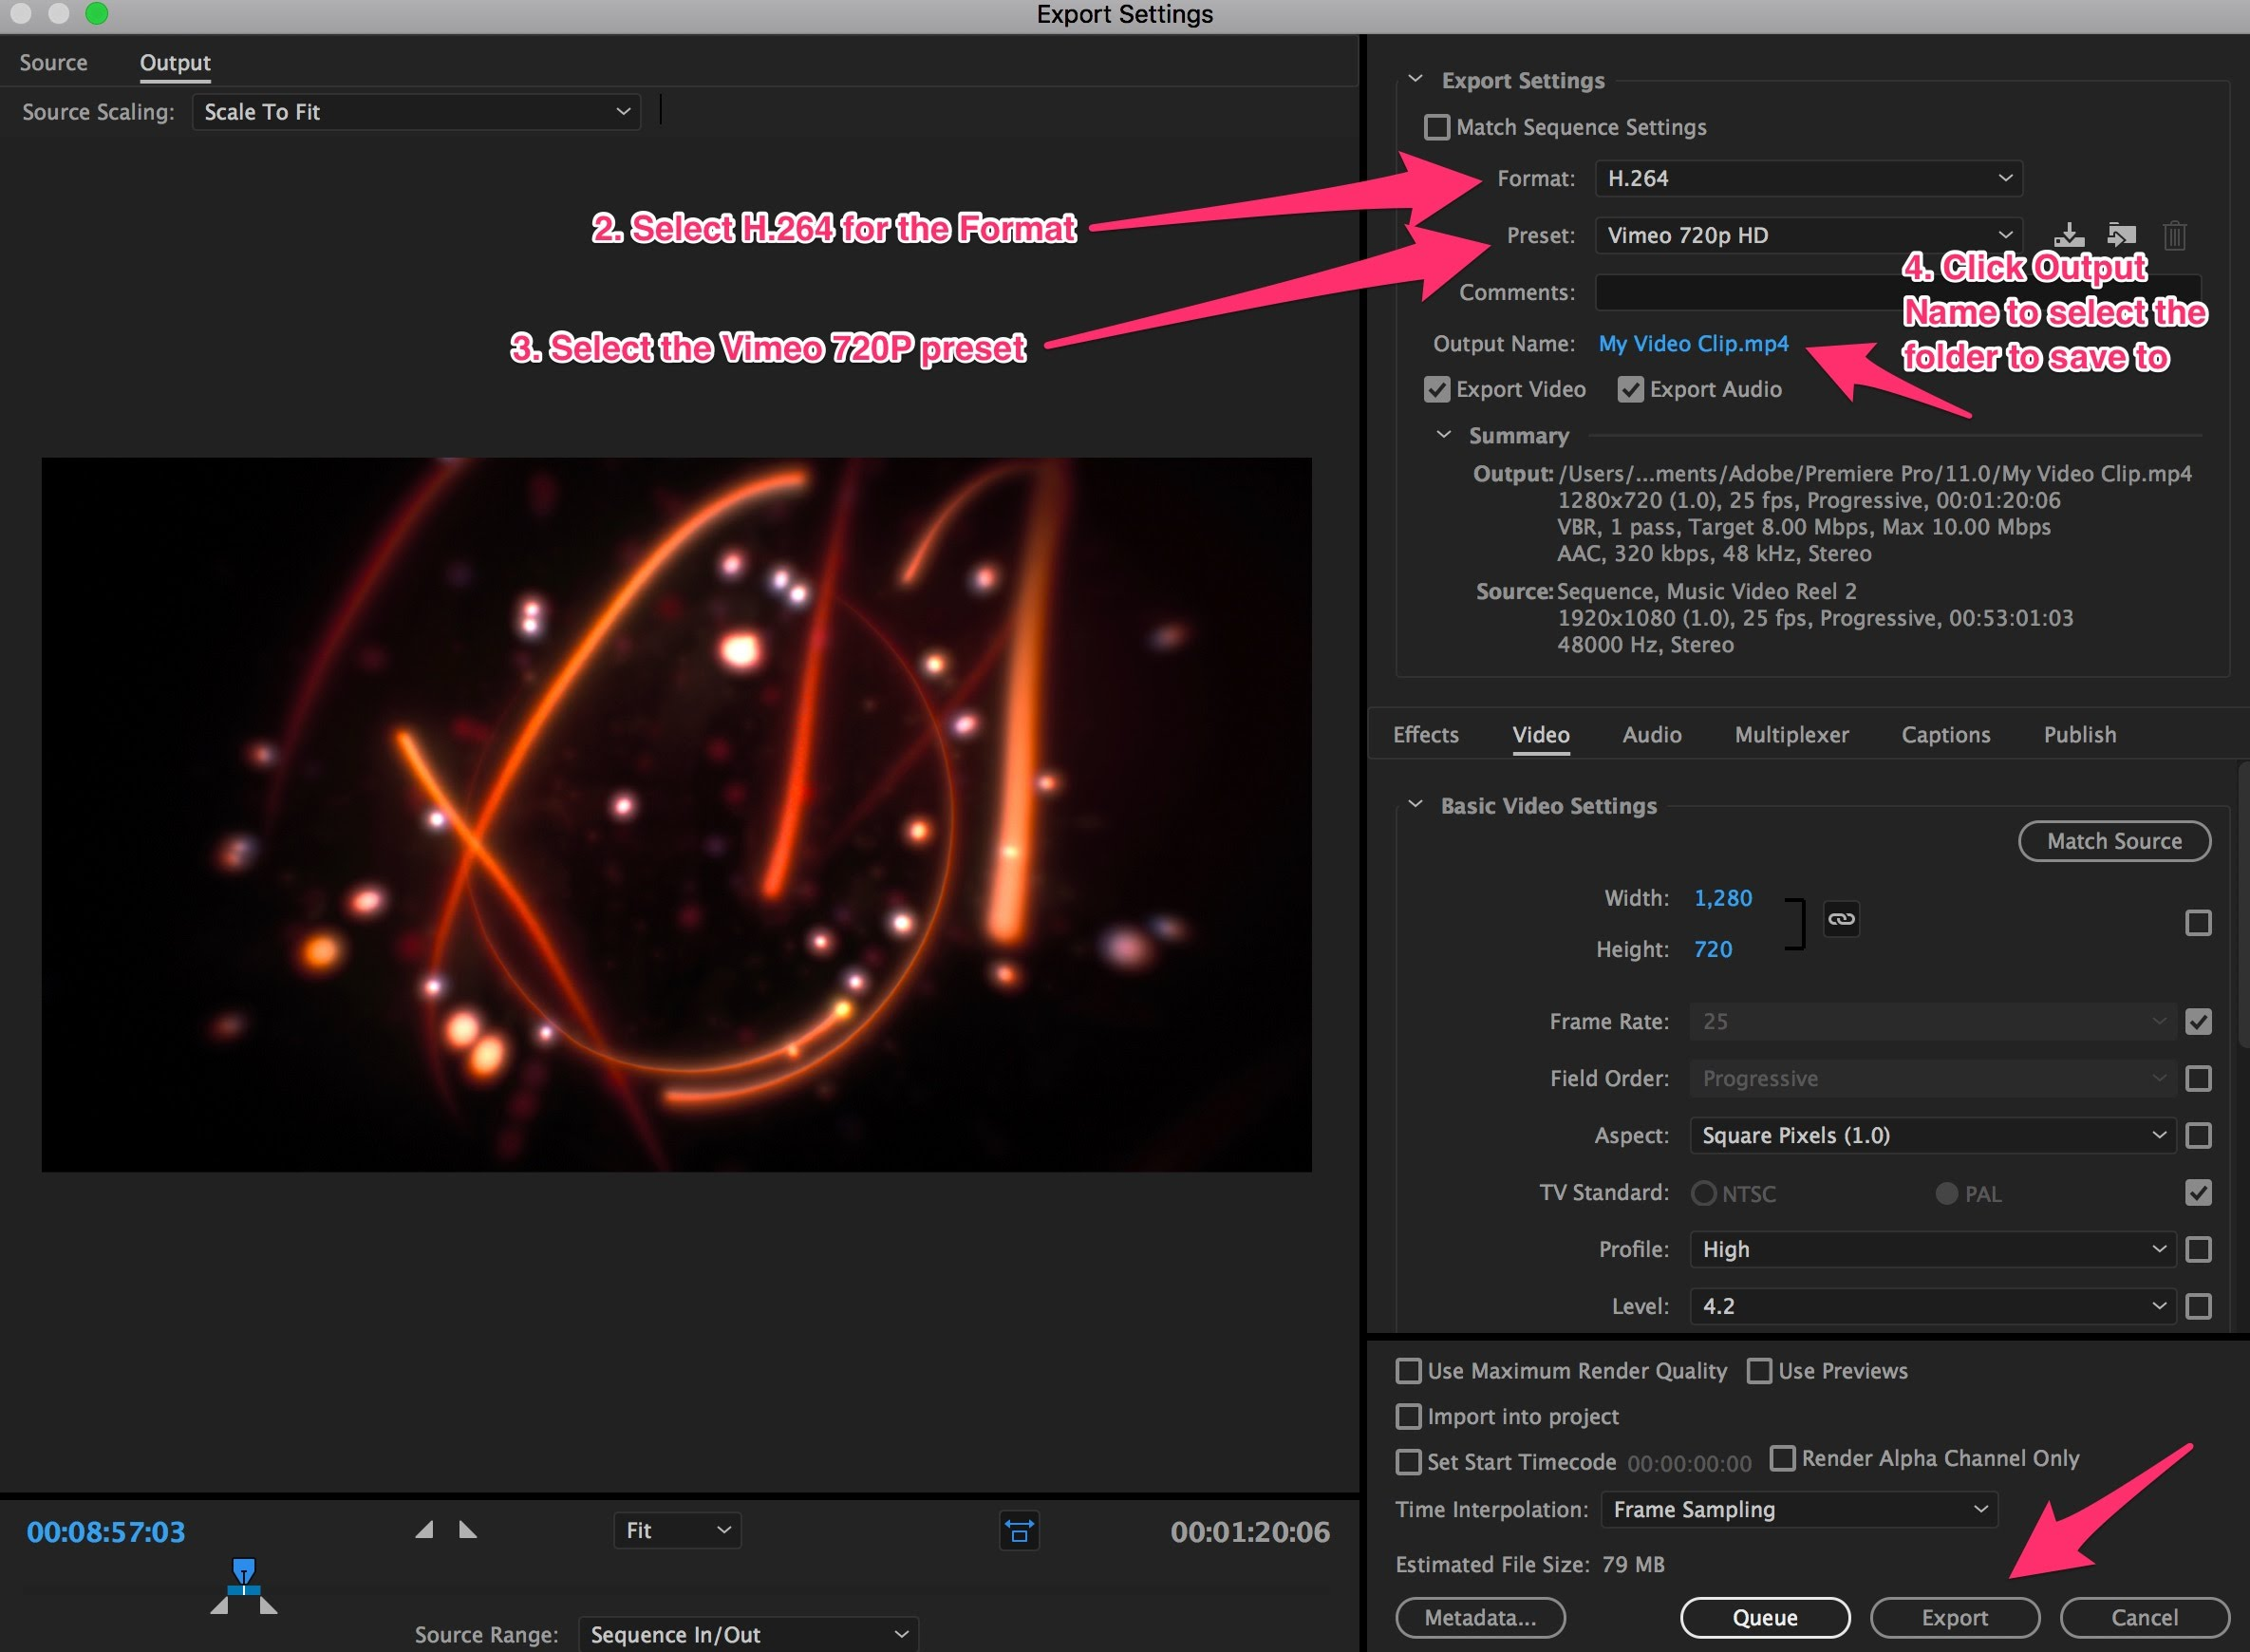 Exporting a compressed clip from Premier Pro to upload to